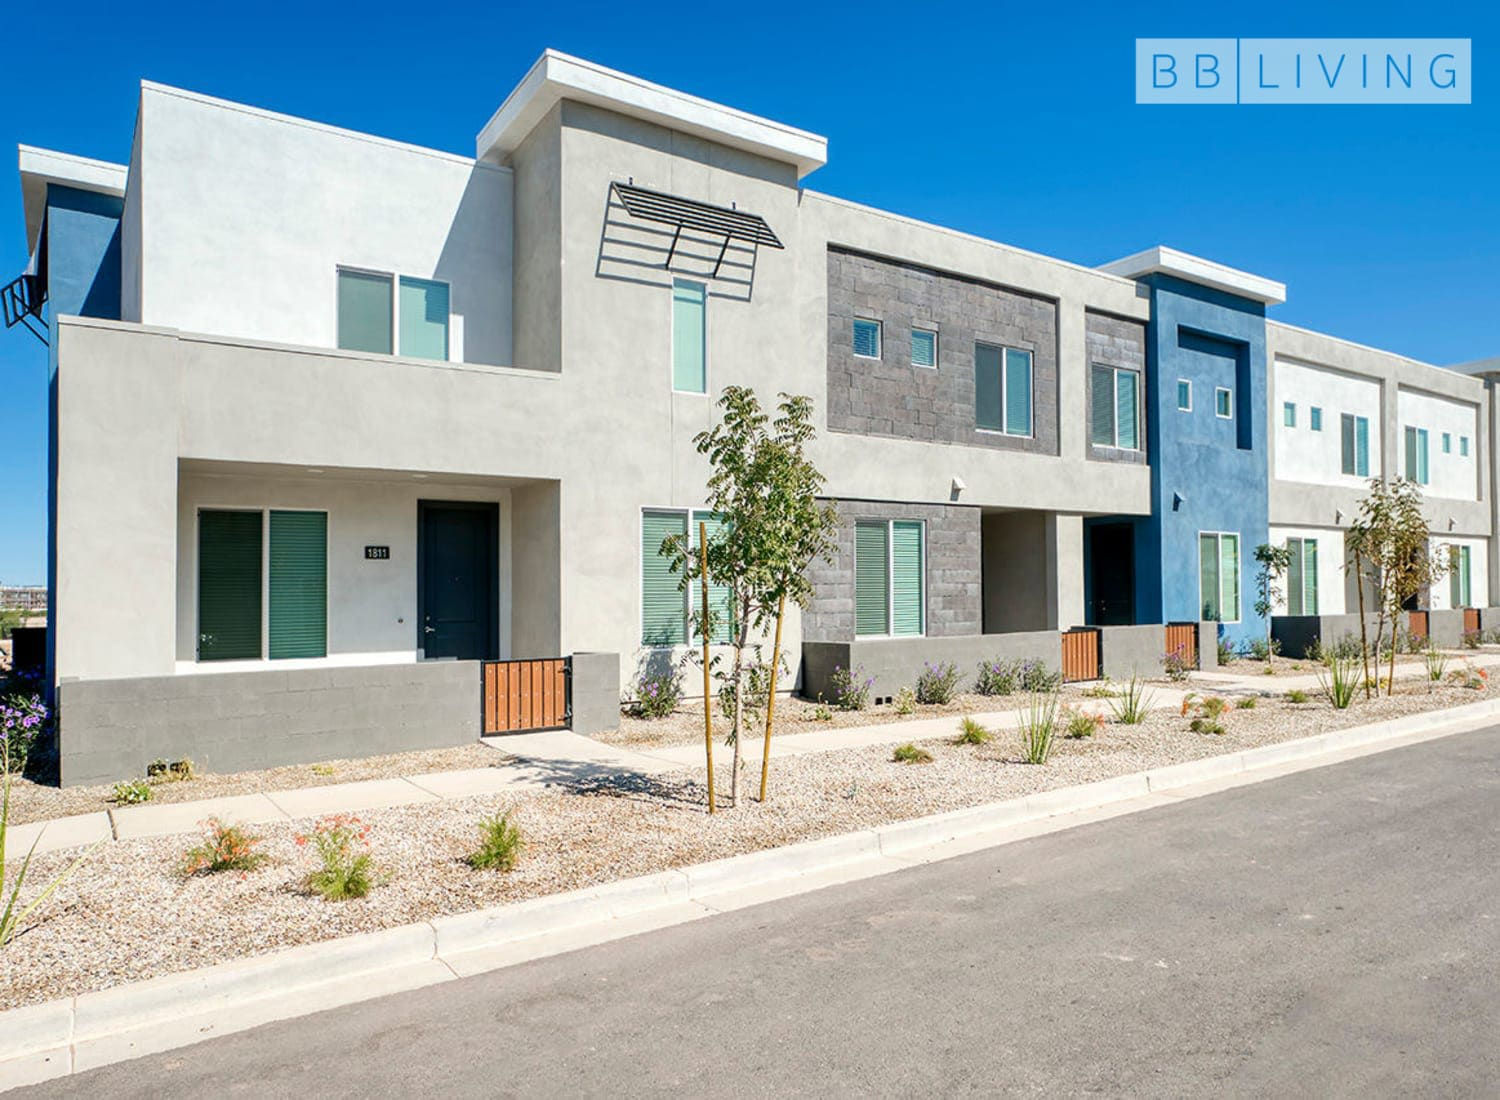 BB Living at Val Vista apartments in Gilbert, Arizona